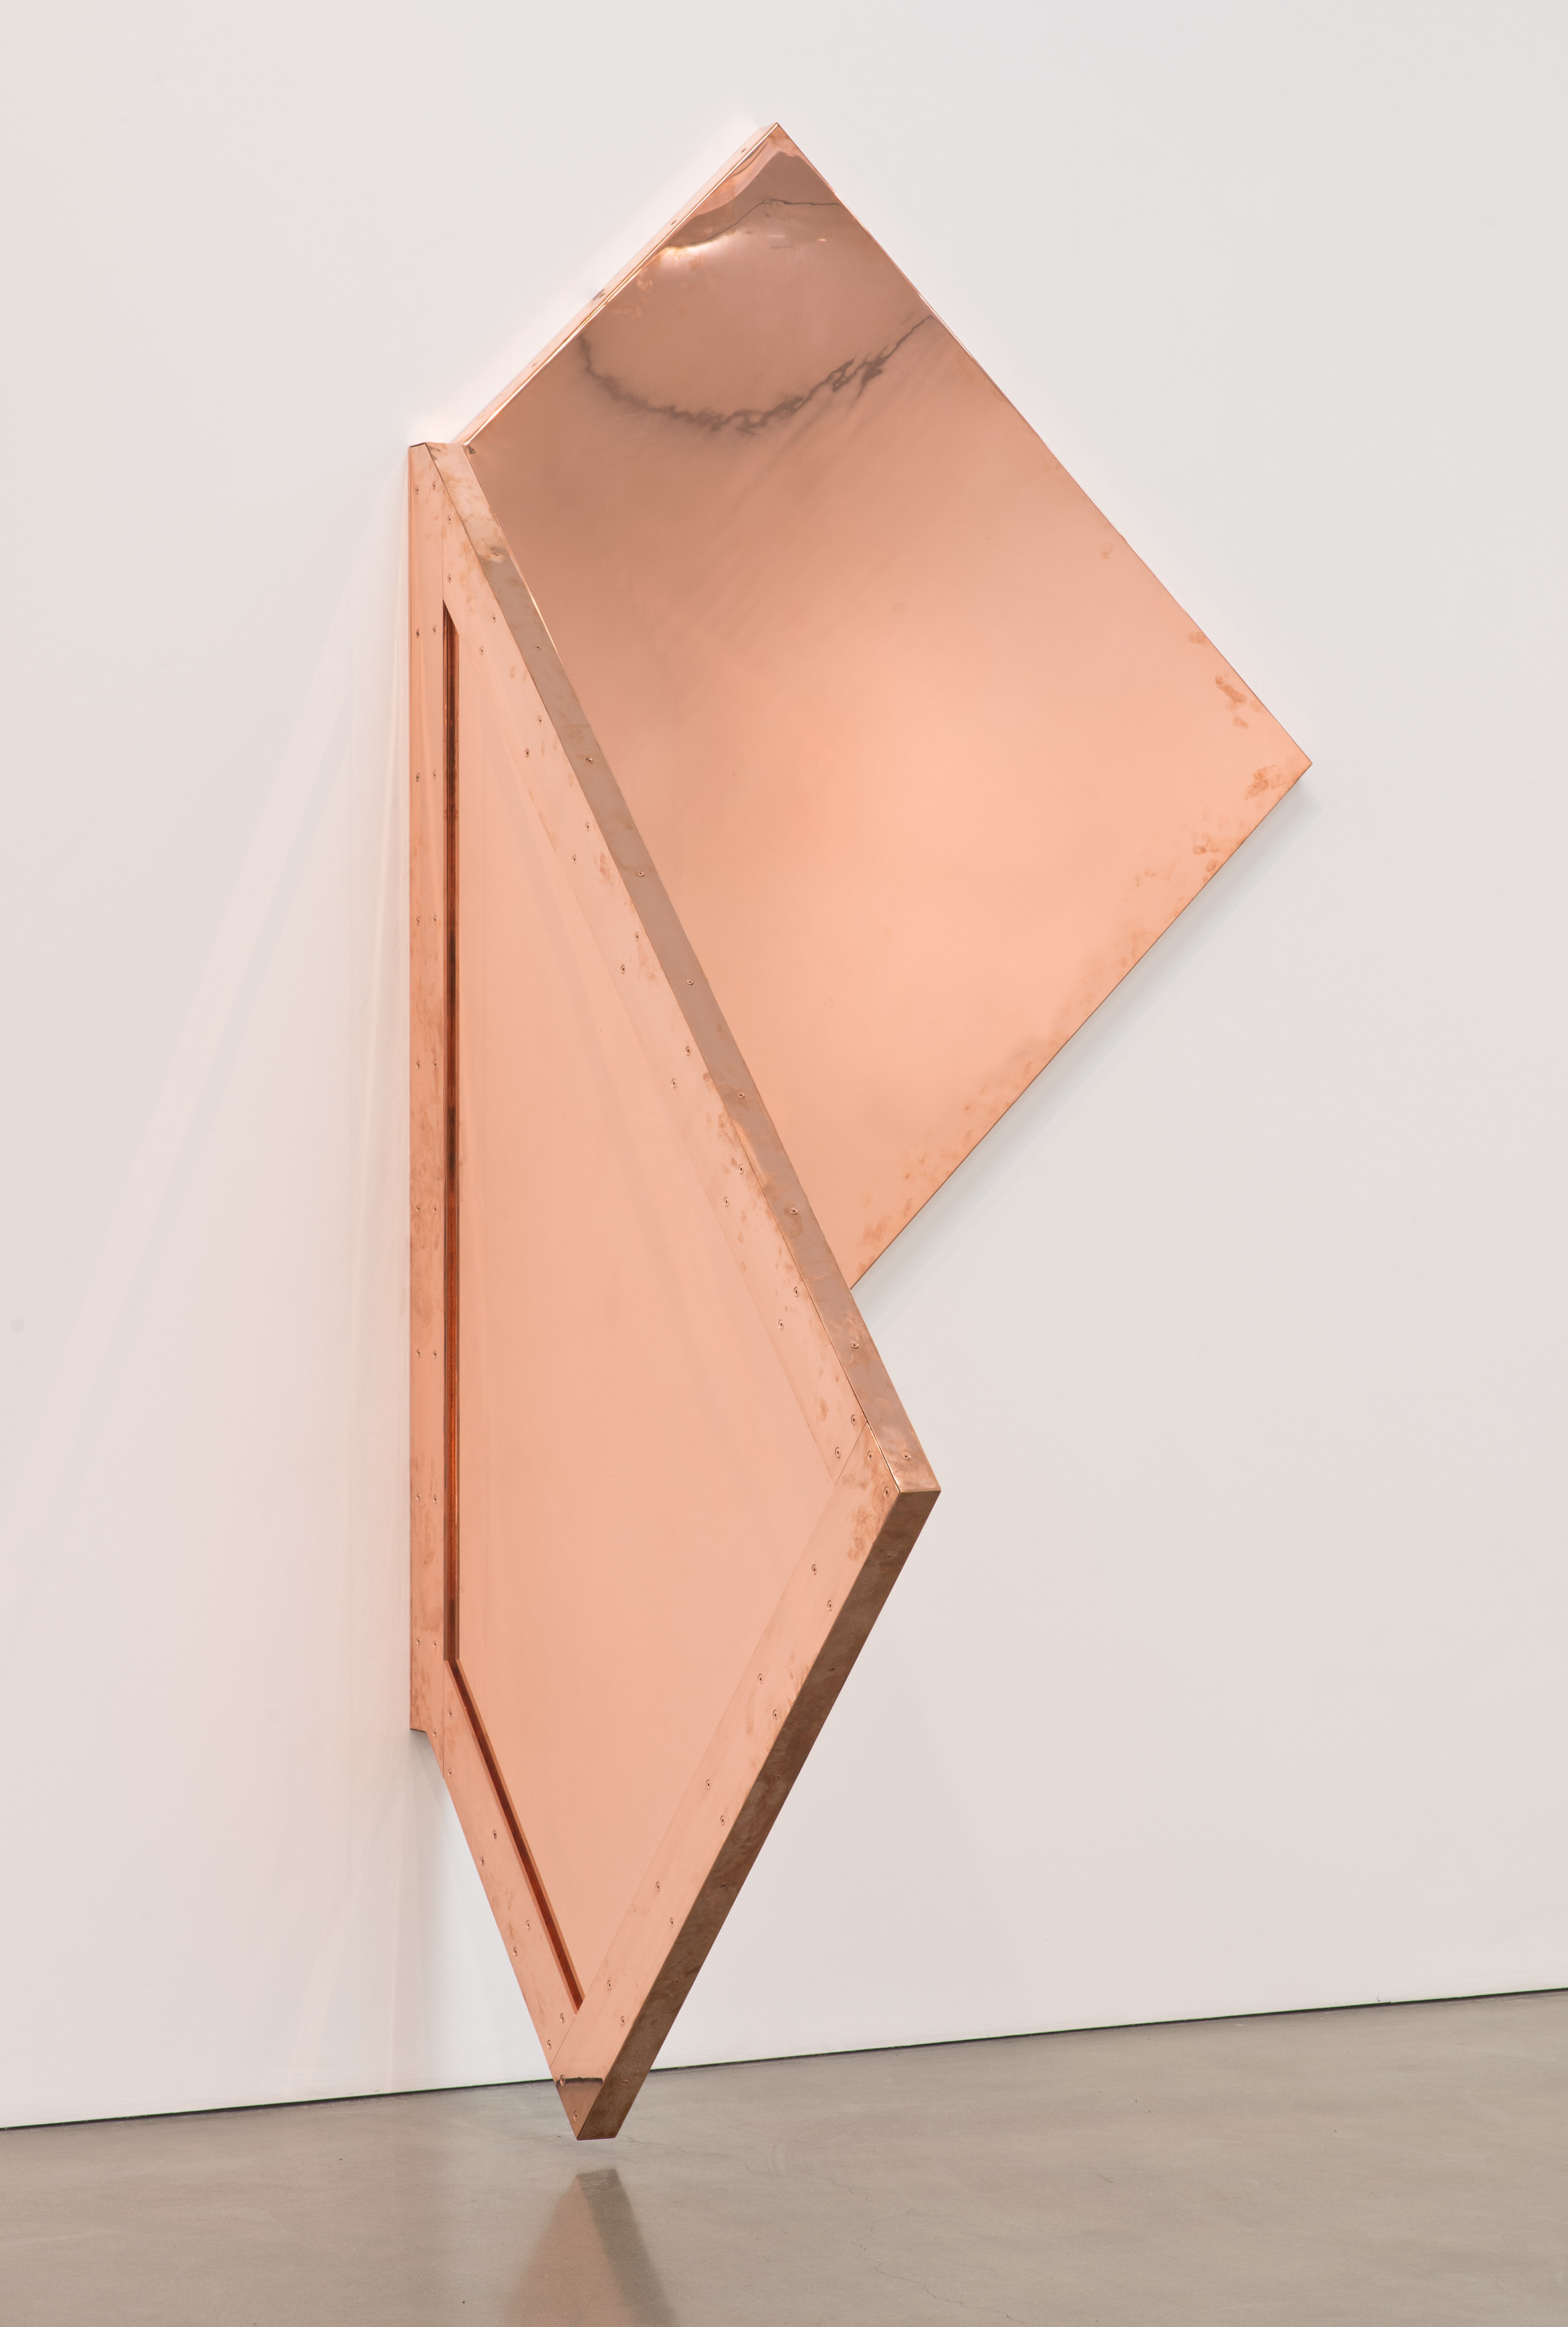 "Copper Surrogate (60"" x 120"" 48 ounce C11000 Copper Alloy, 90º Bend, 77 3/4"" 45º Diagonal / 135º Antidiagonal Bisection: February 20/April 5, 2014, Los Angeles, California)    2014   Polished copper  110 x 60 x 50 inches   Surrogates (Full Sheet, Art Handling), 2011–"